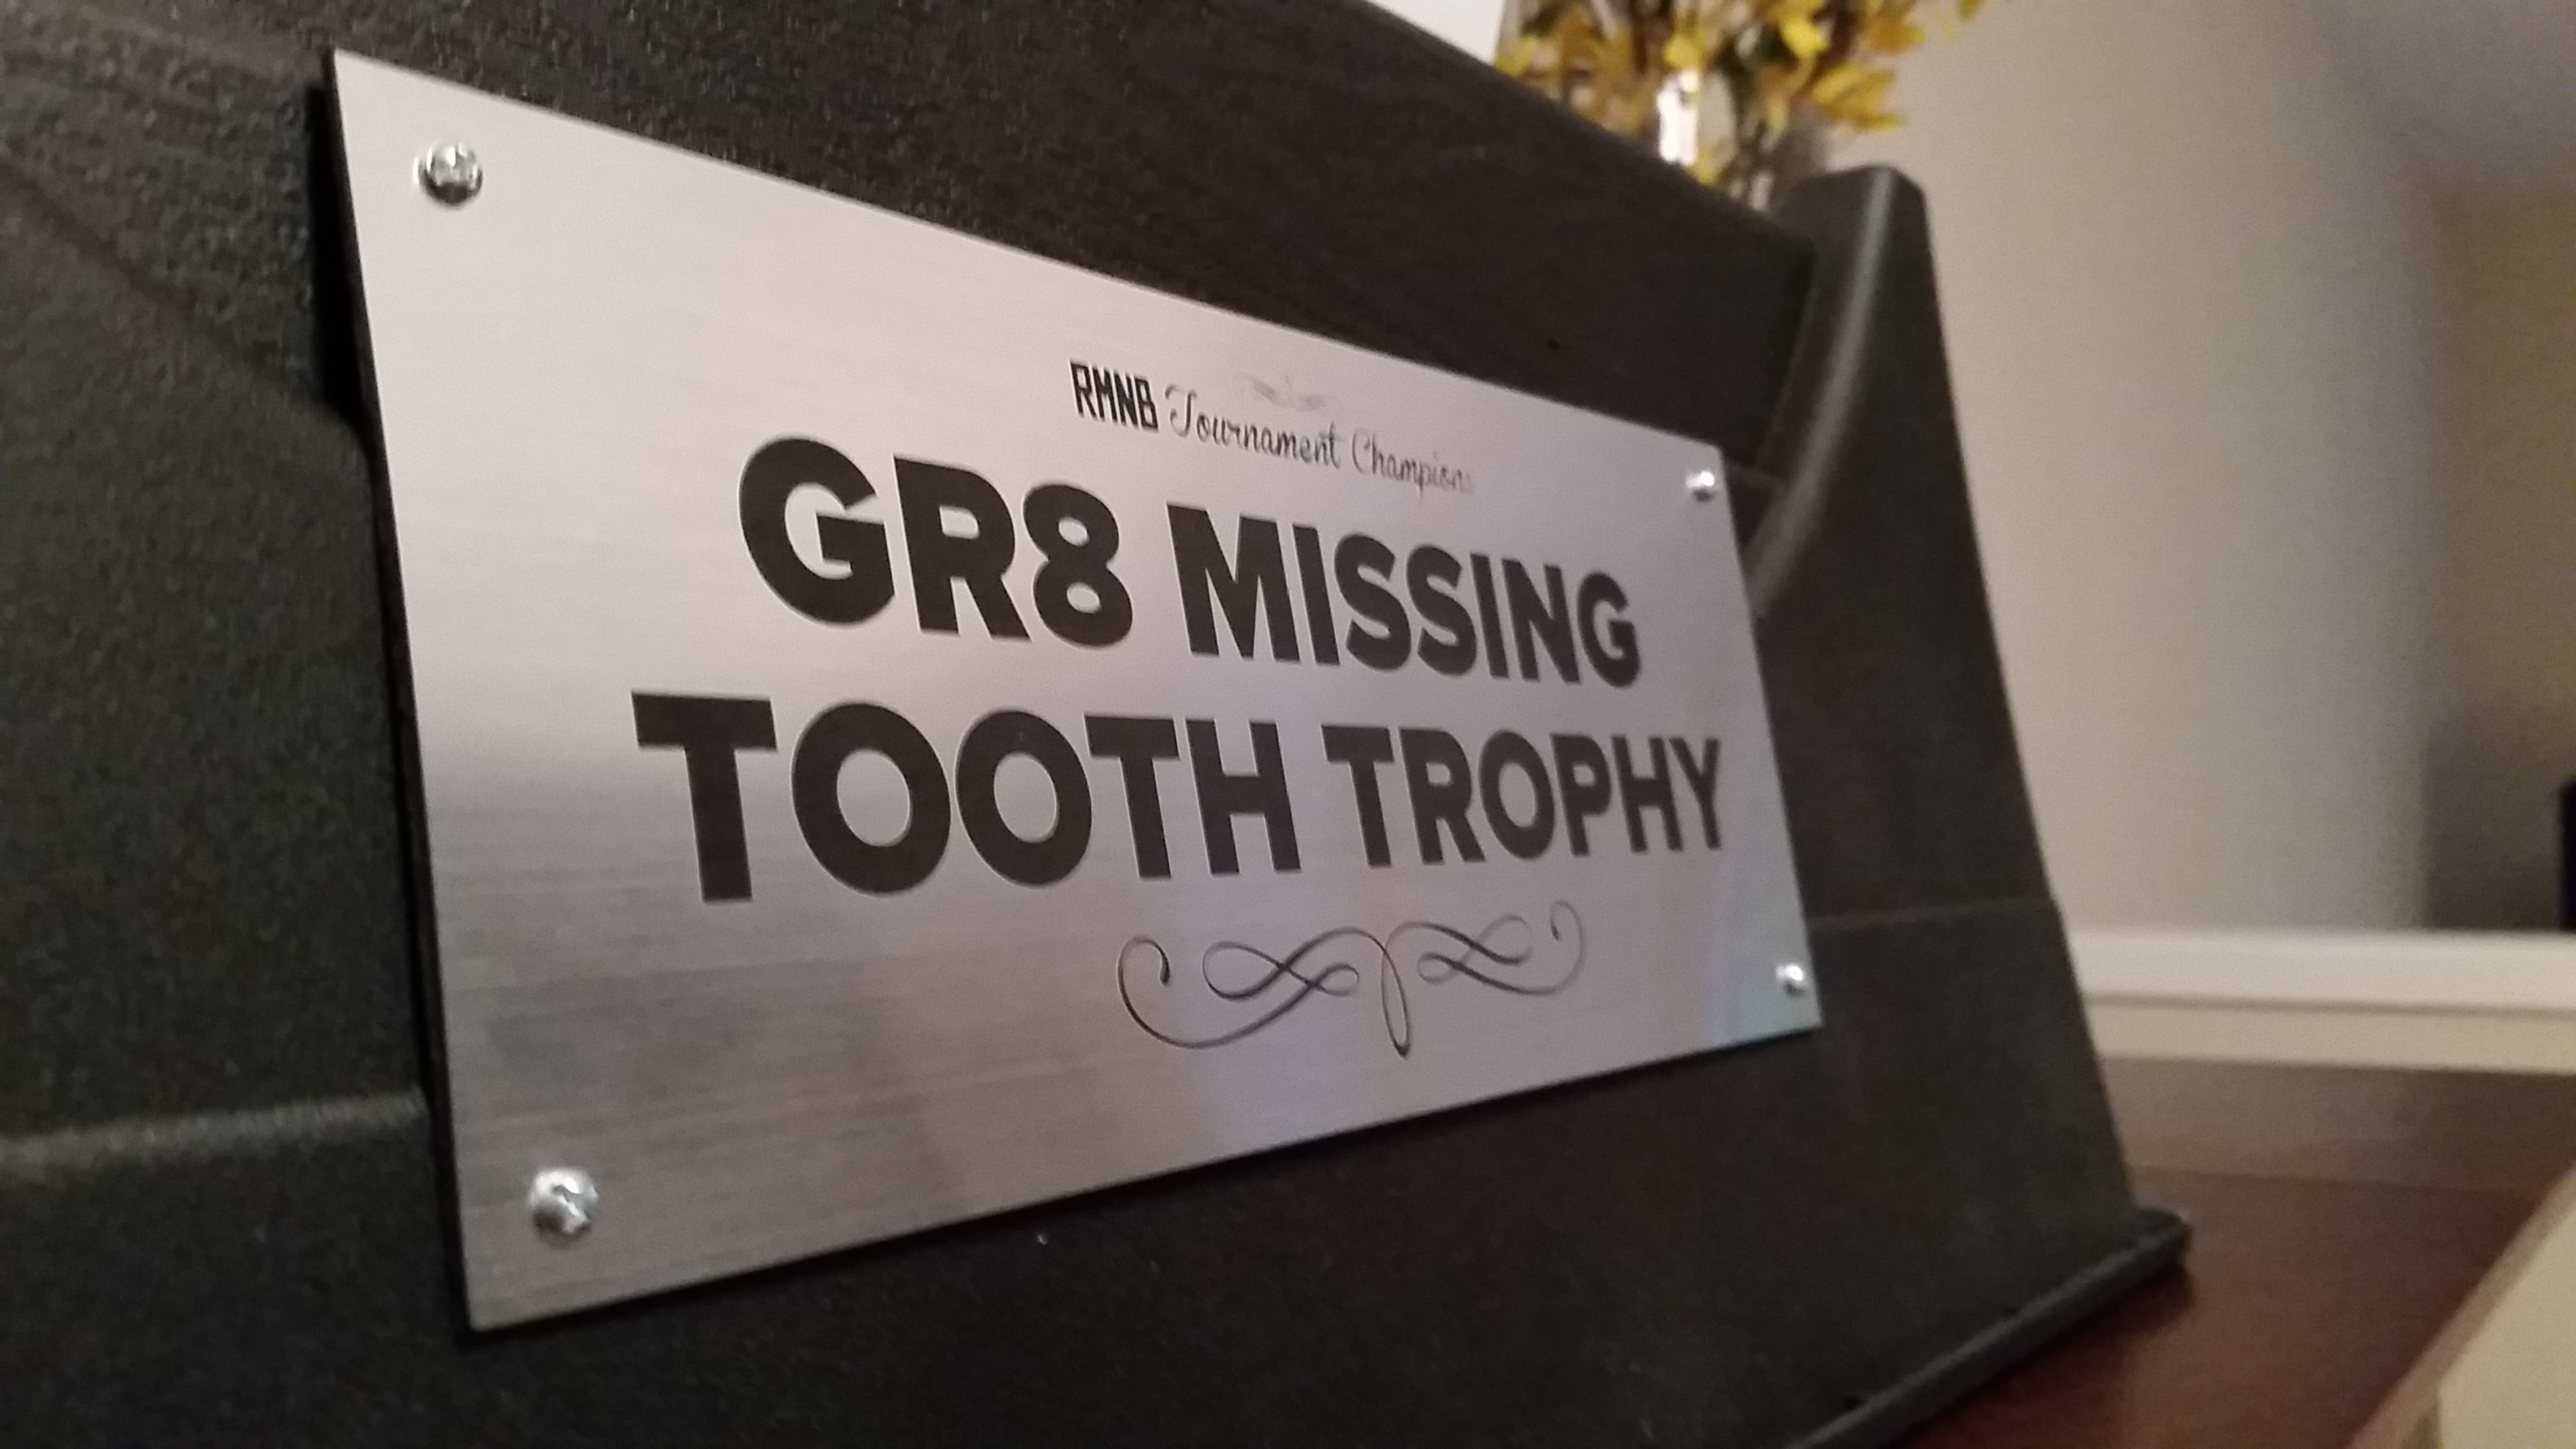 gr8-missing-tooth-trophy-detail